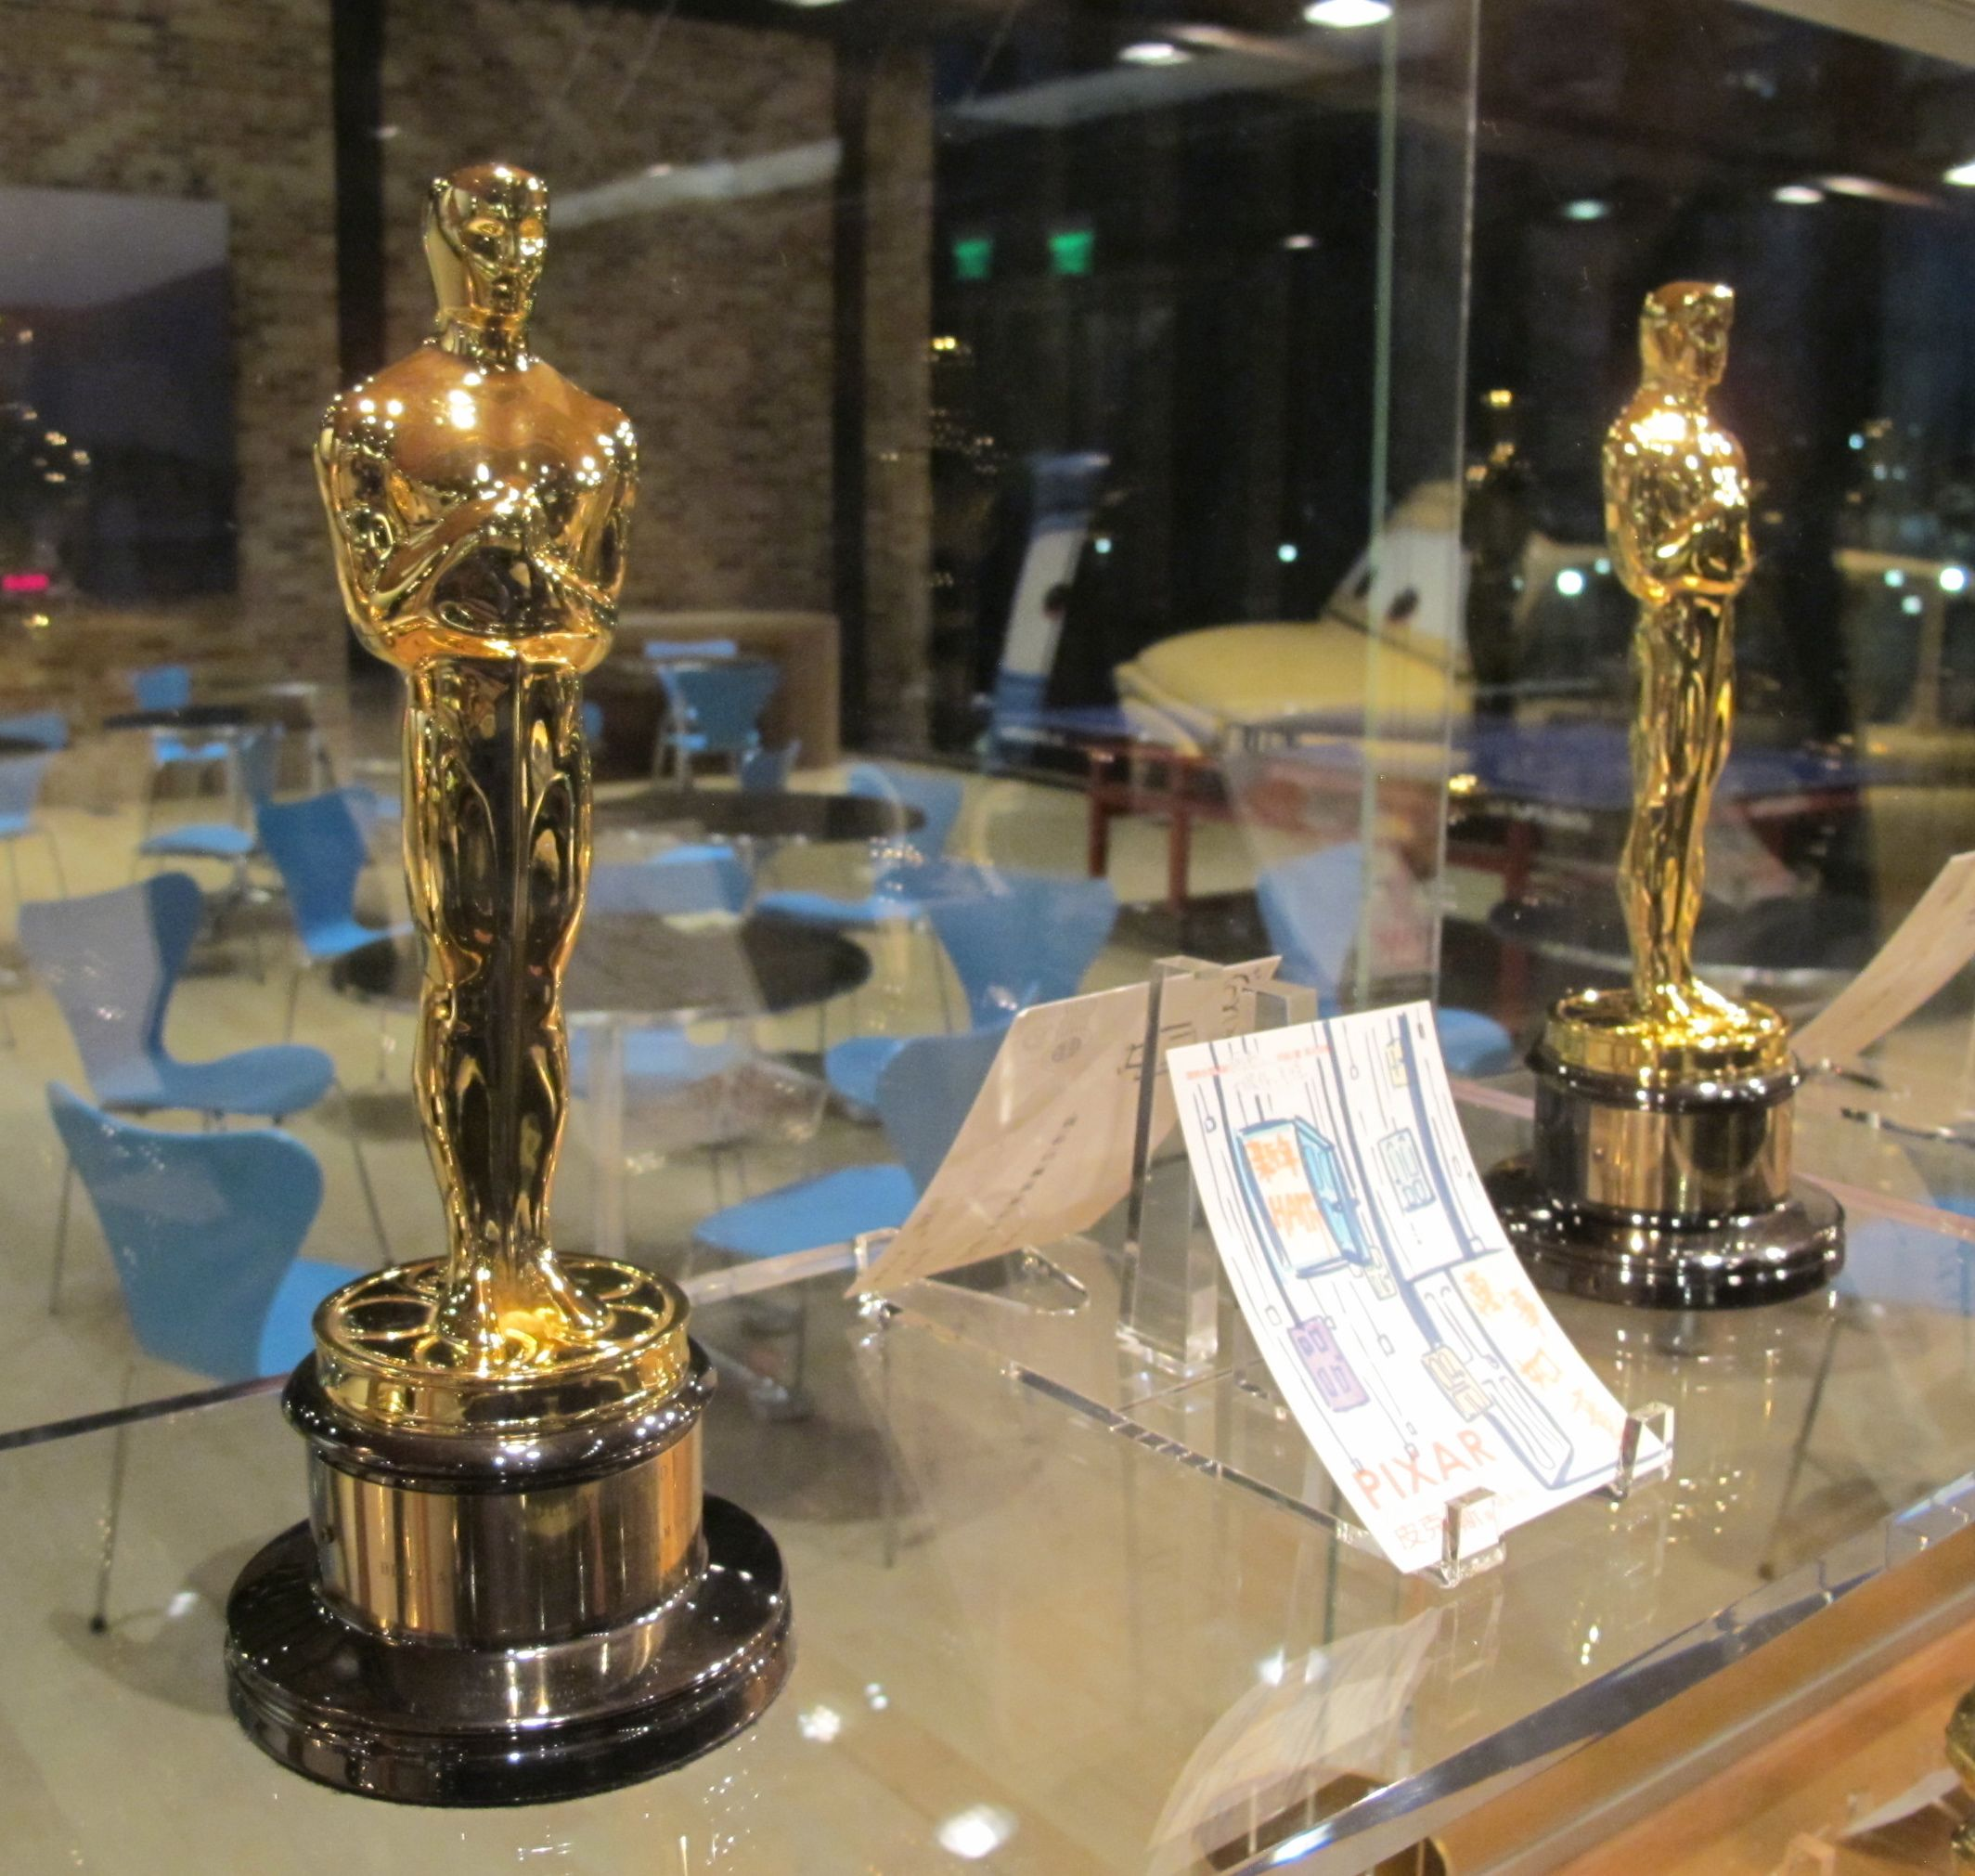 I mentioned the Oscars right? These were the first ones Pamelia and I had ever seen in person.